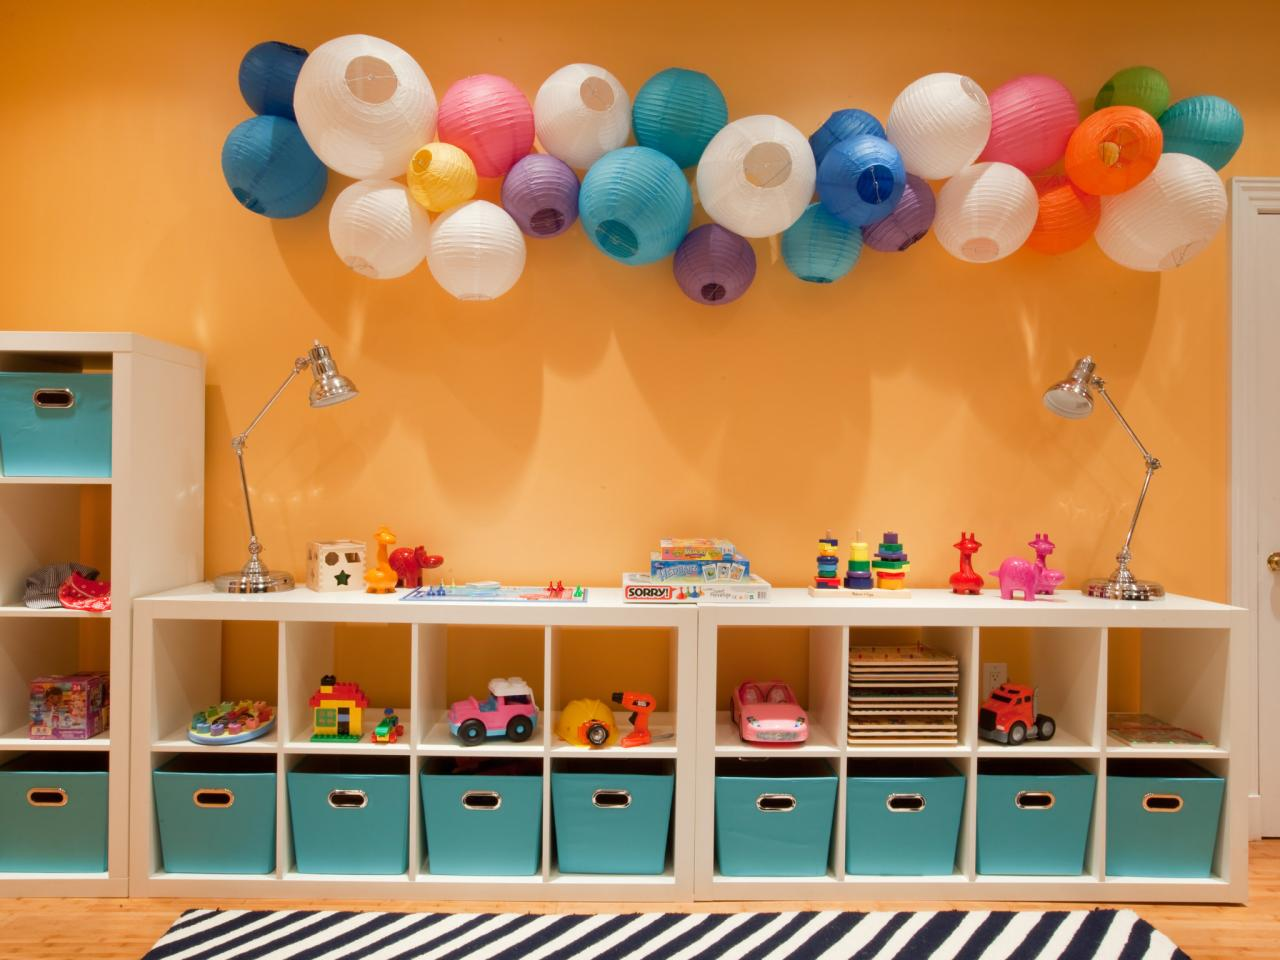 Wall Cubby Storage In Playroom With Paper Lanterns